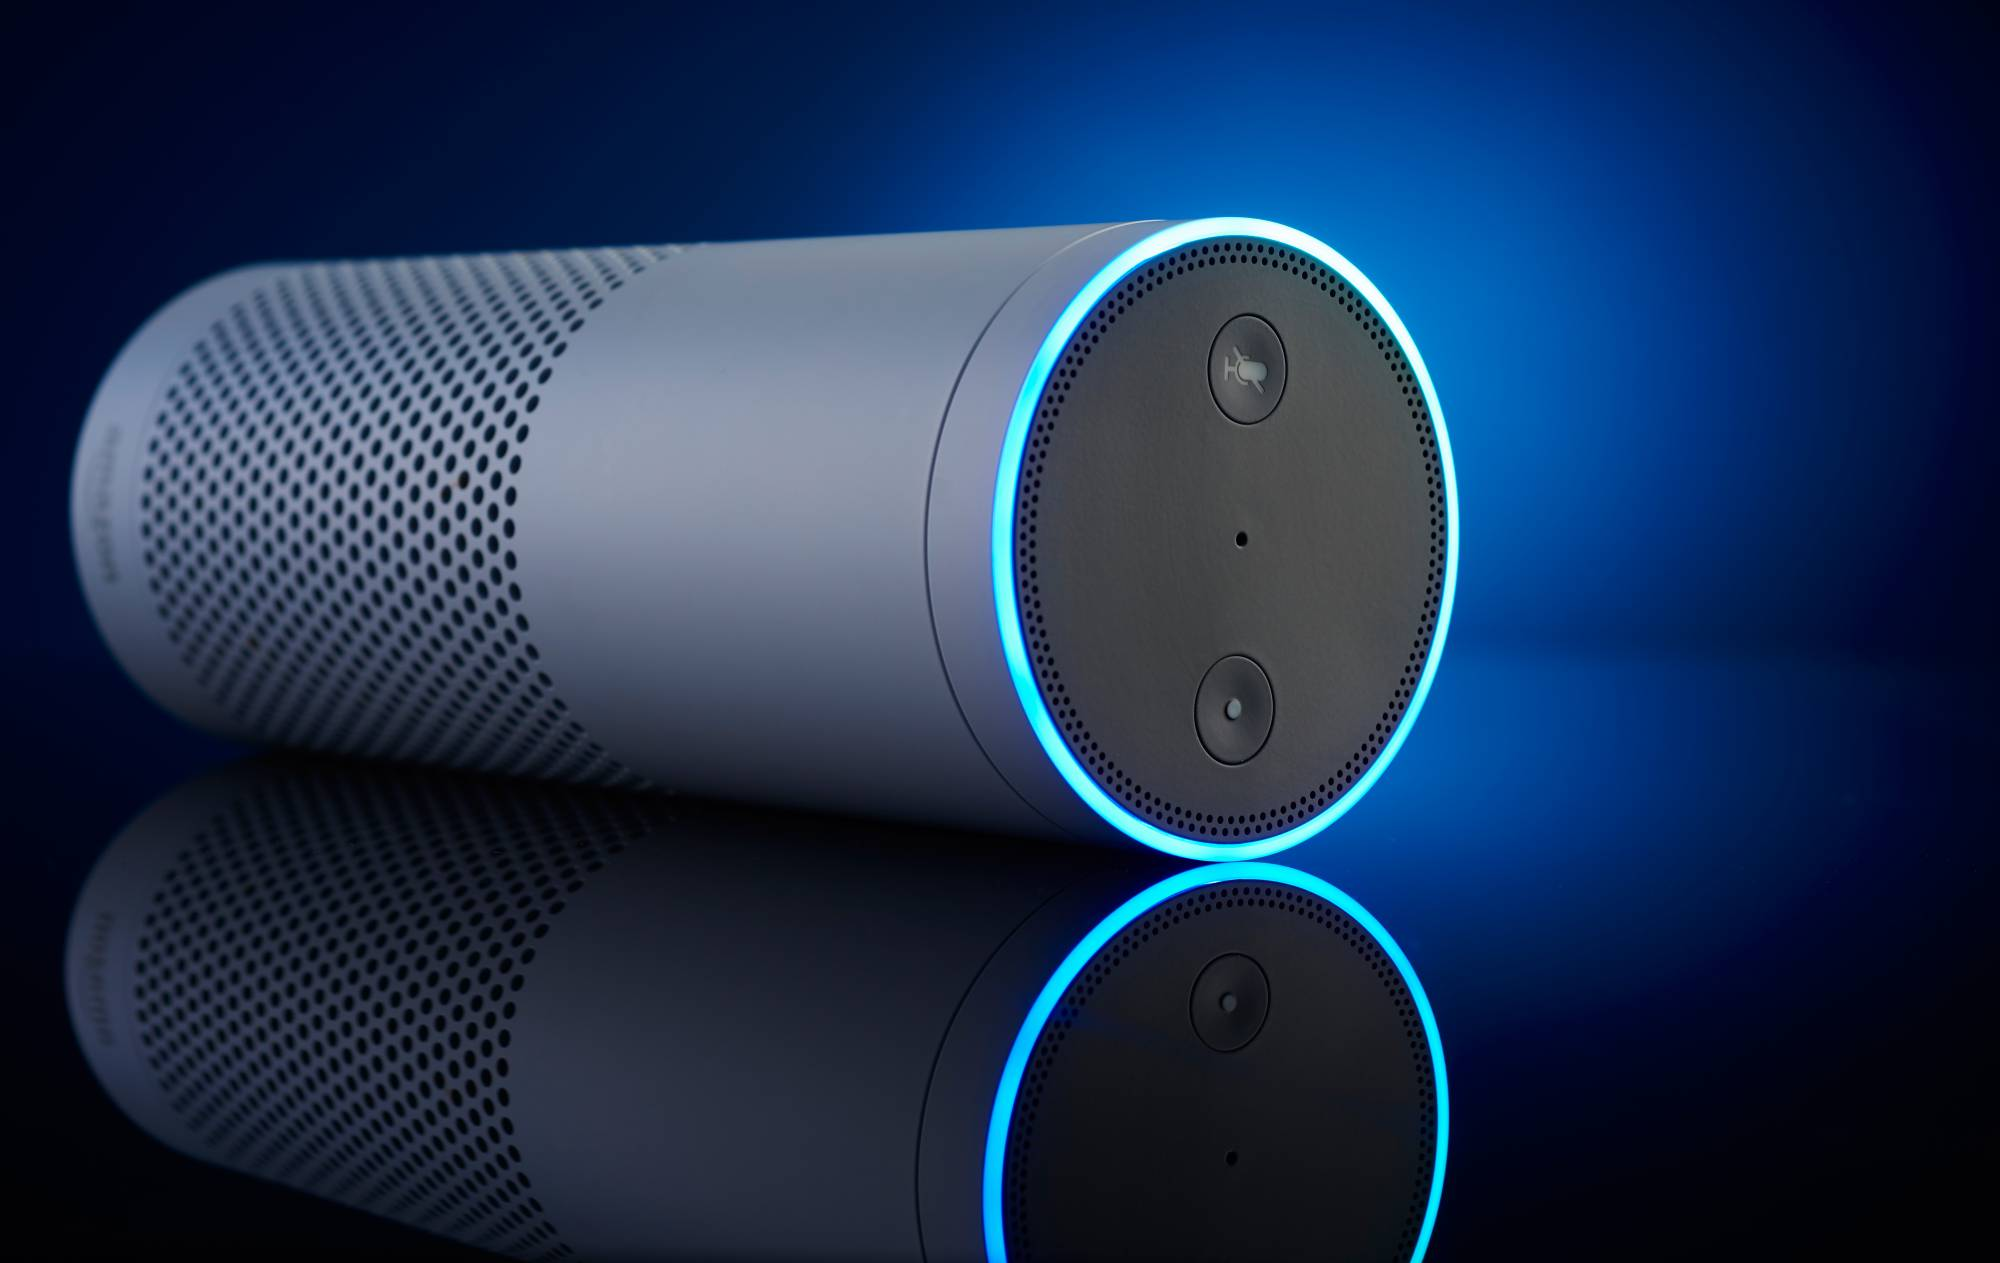 Amazon's Alexa Fund fellowship to improve the state of voice technology expands to 14 more universities.